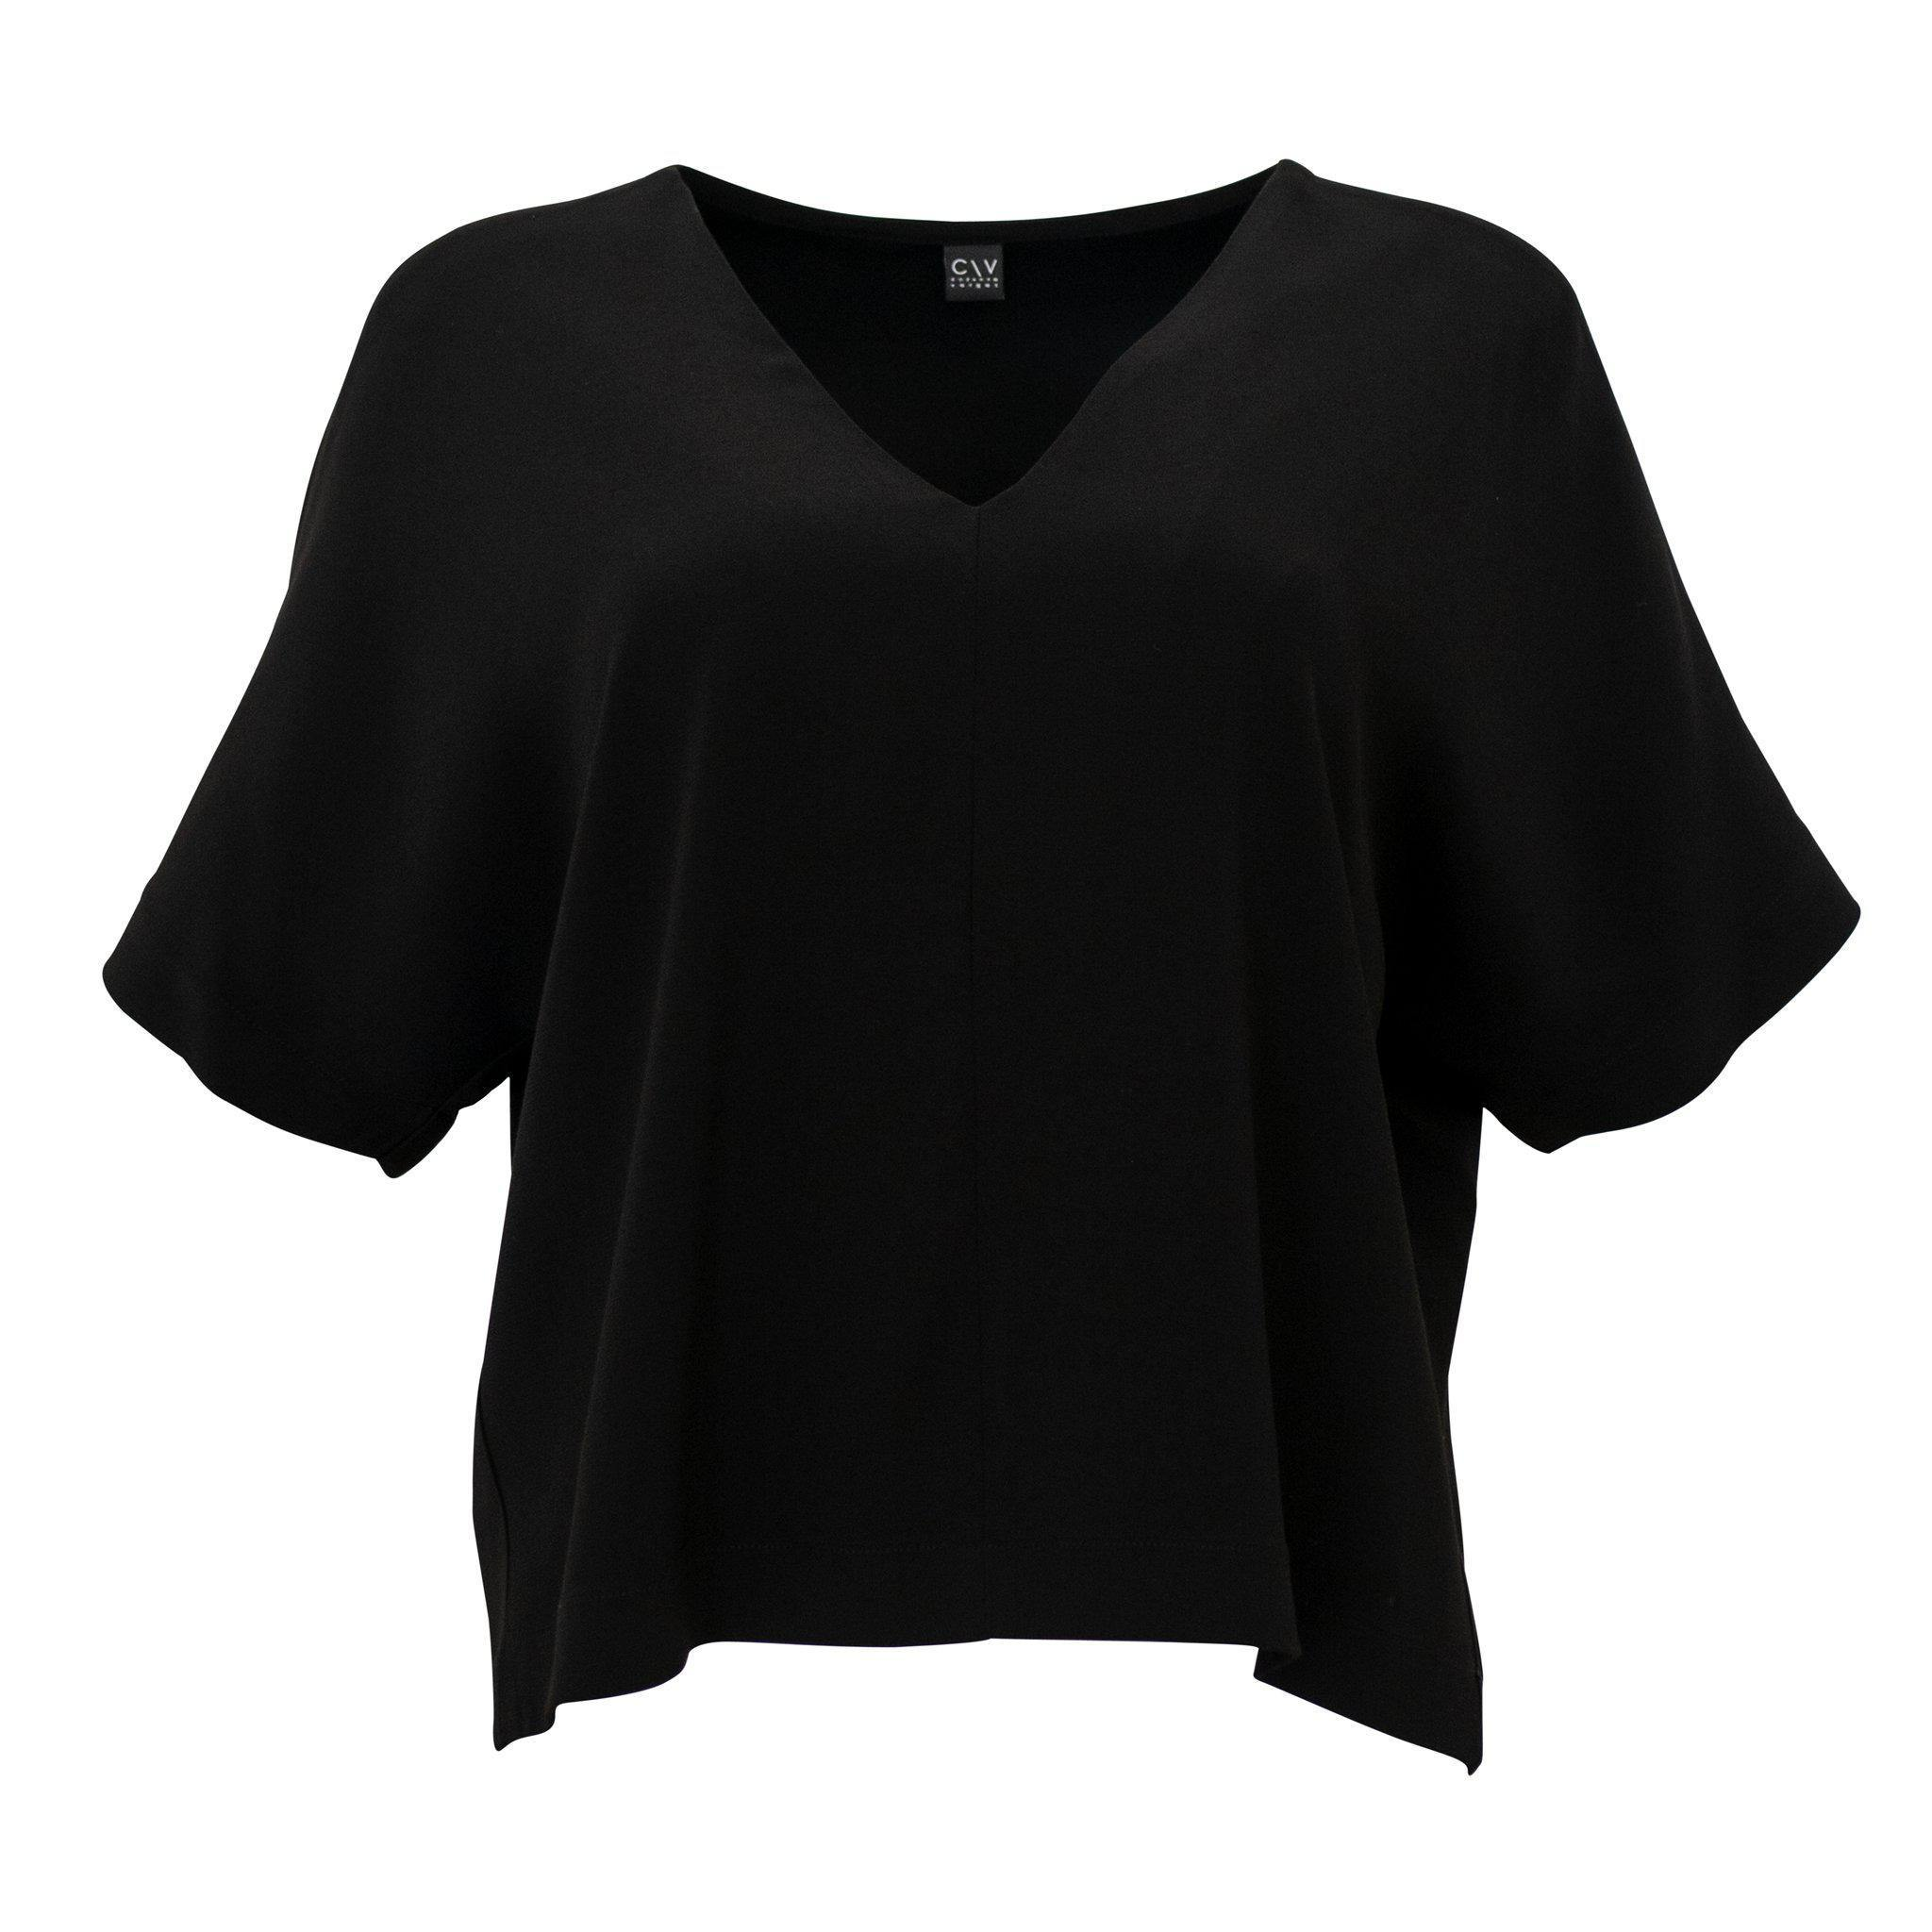 Lille Top Black Silk - Corvera Vargas berlin conscious fashion brand. Lille Top Black Silk for women. Consci